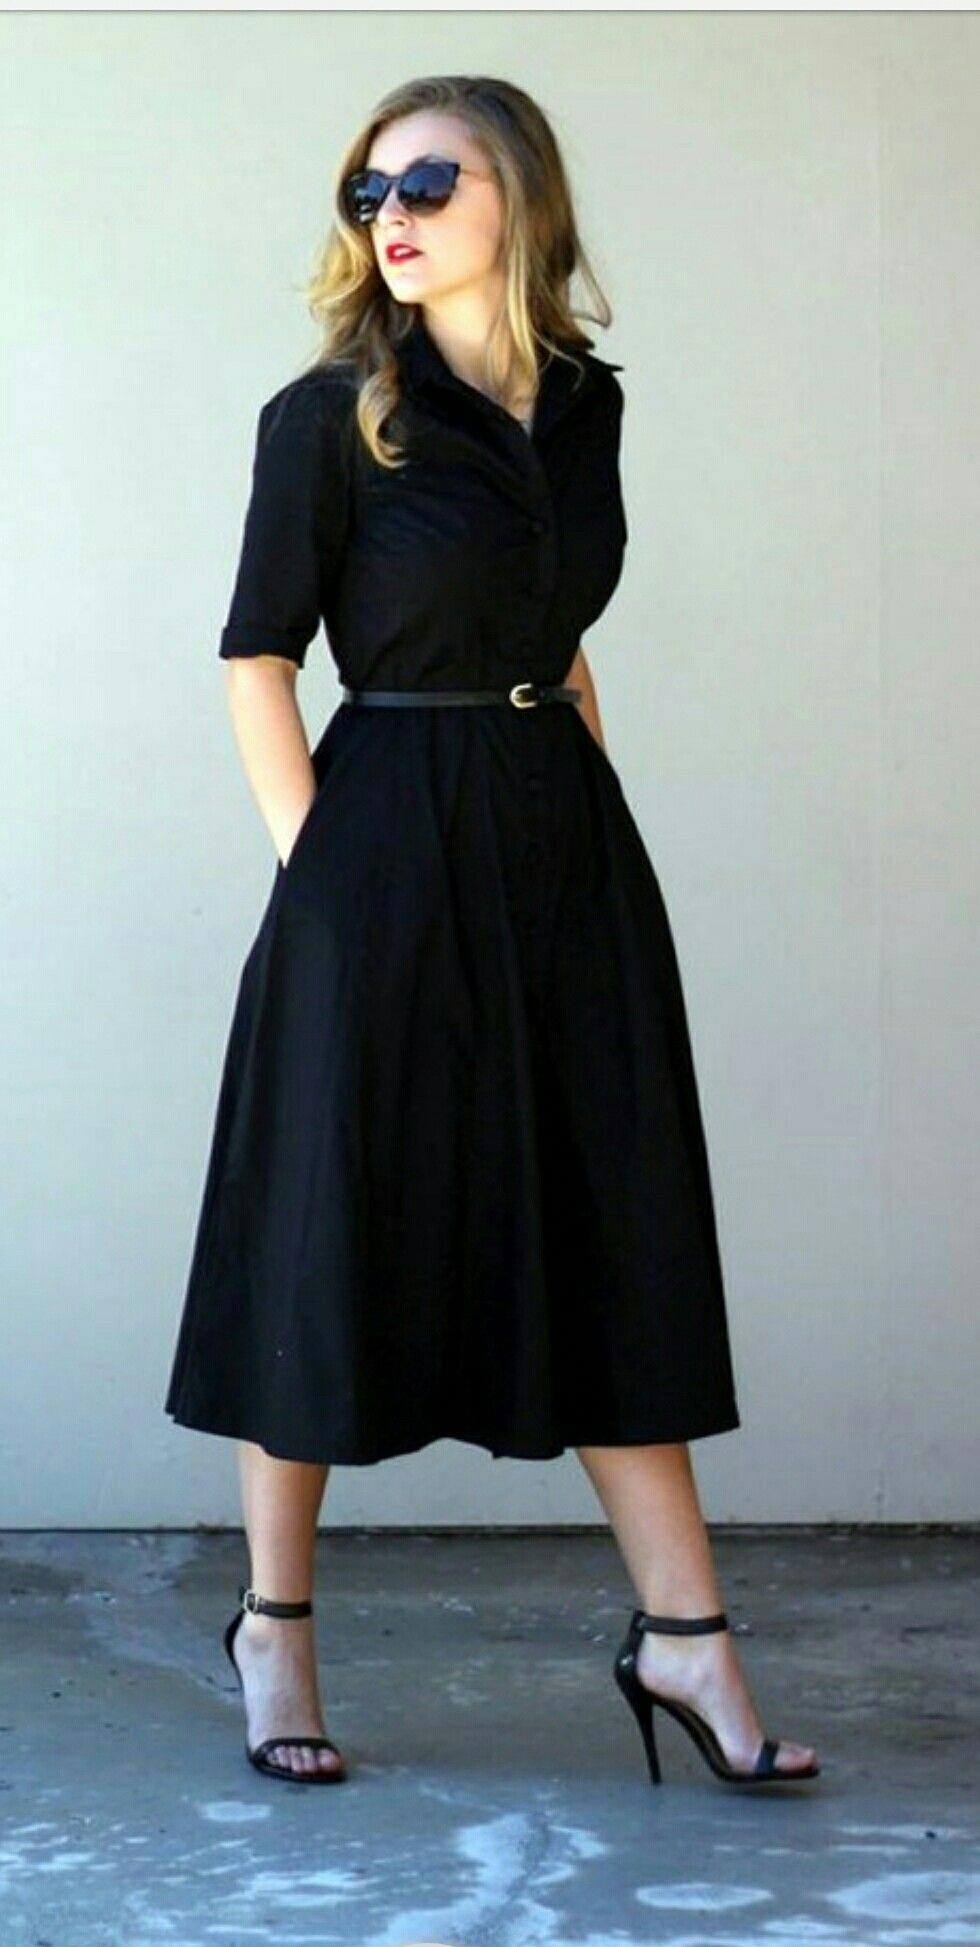 8c086e90517 Black dress office chic look  fashionstyle